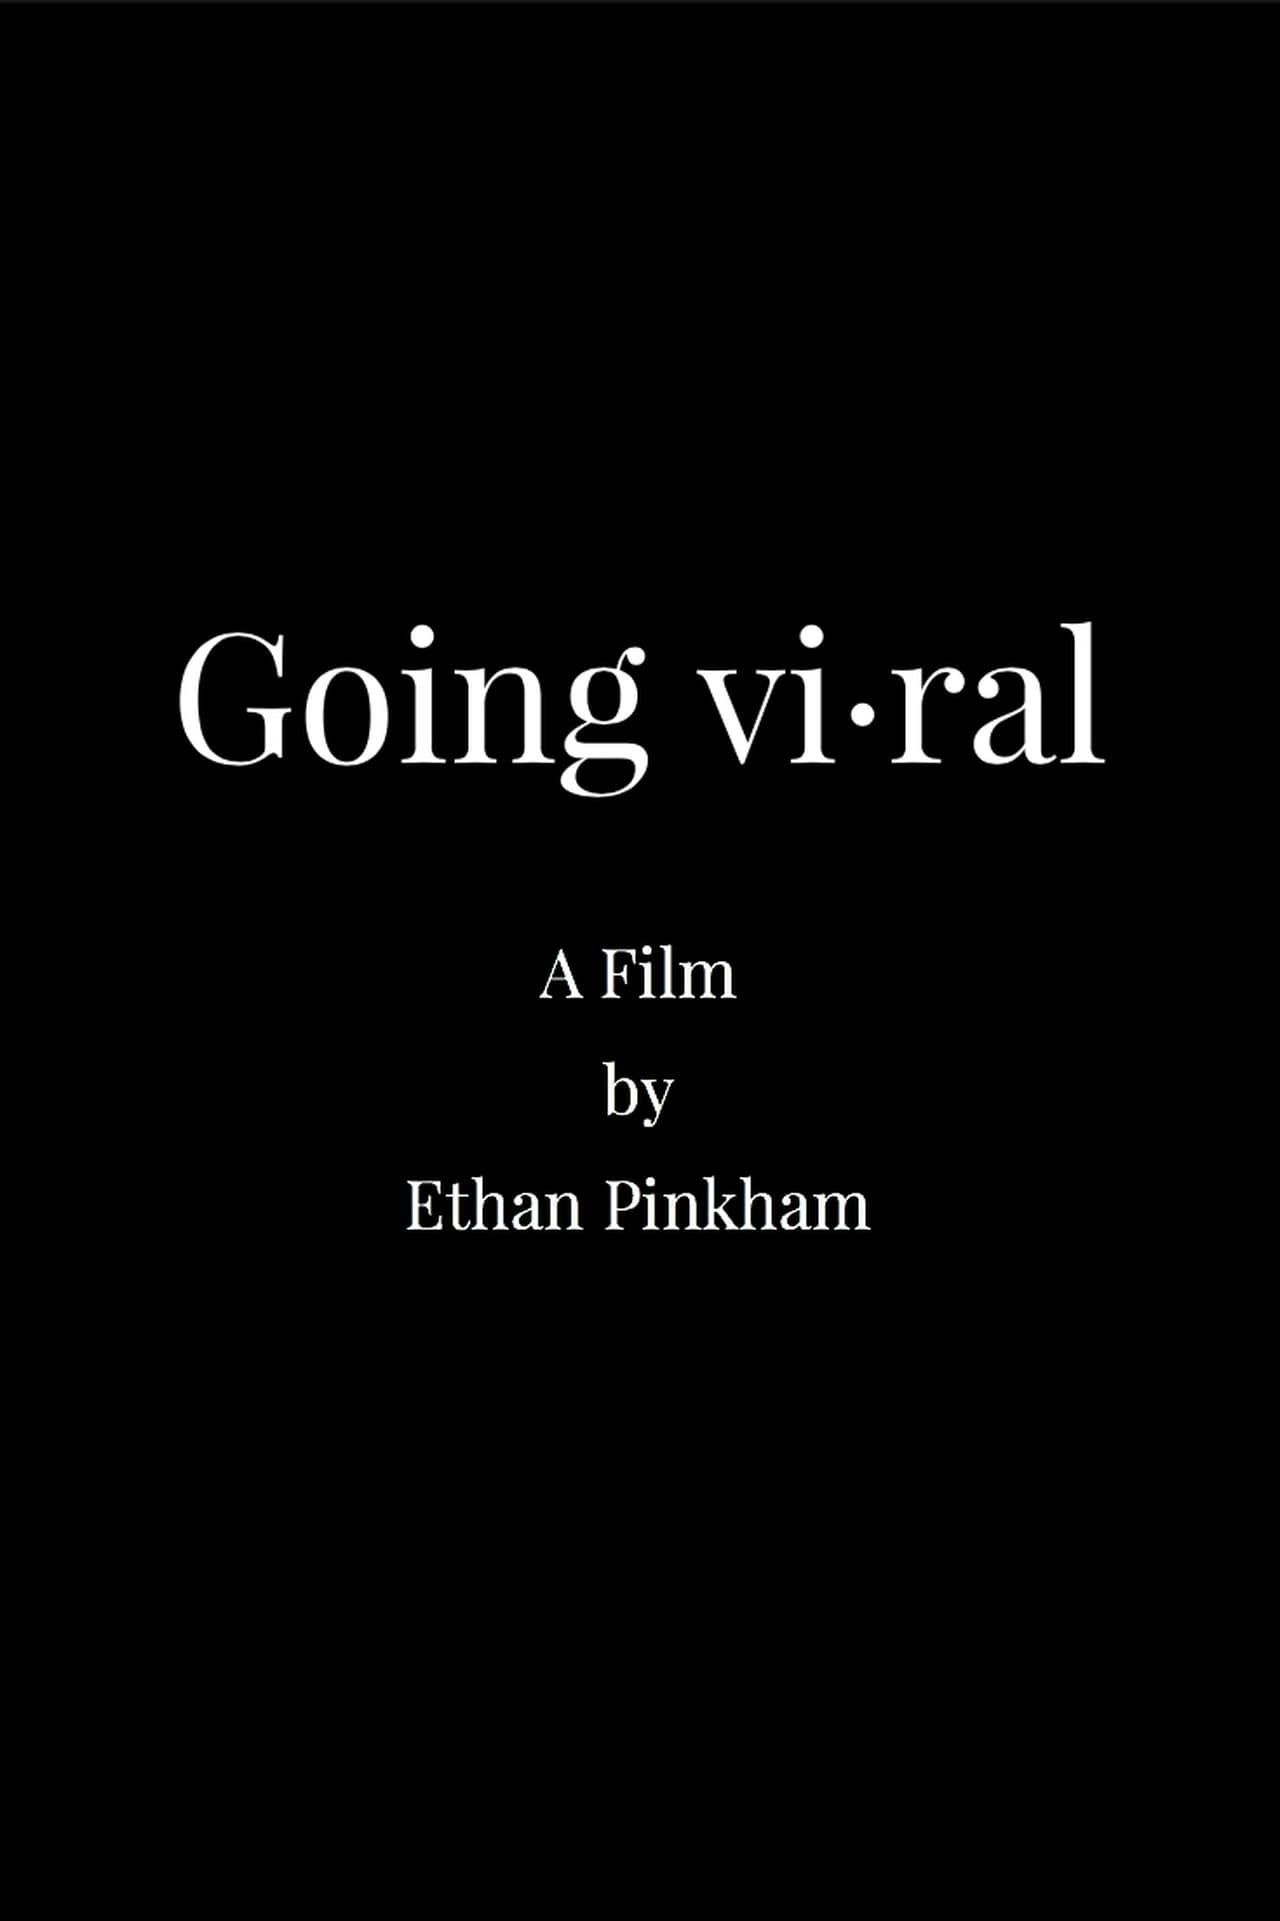 Going Viral Free movie online at 123movies